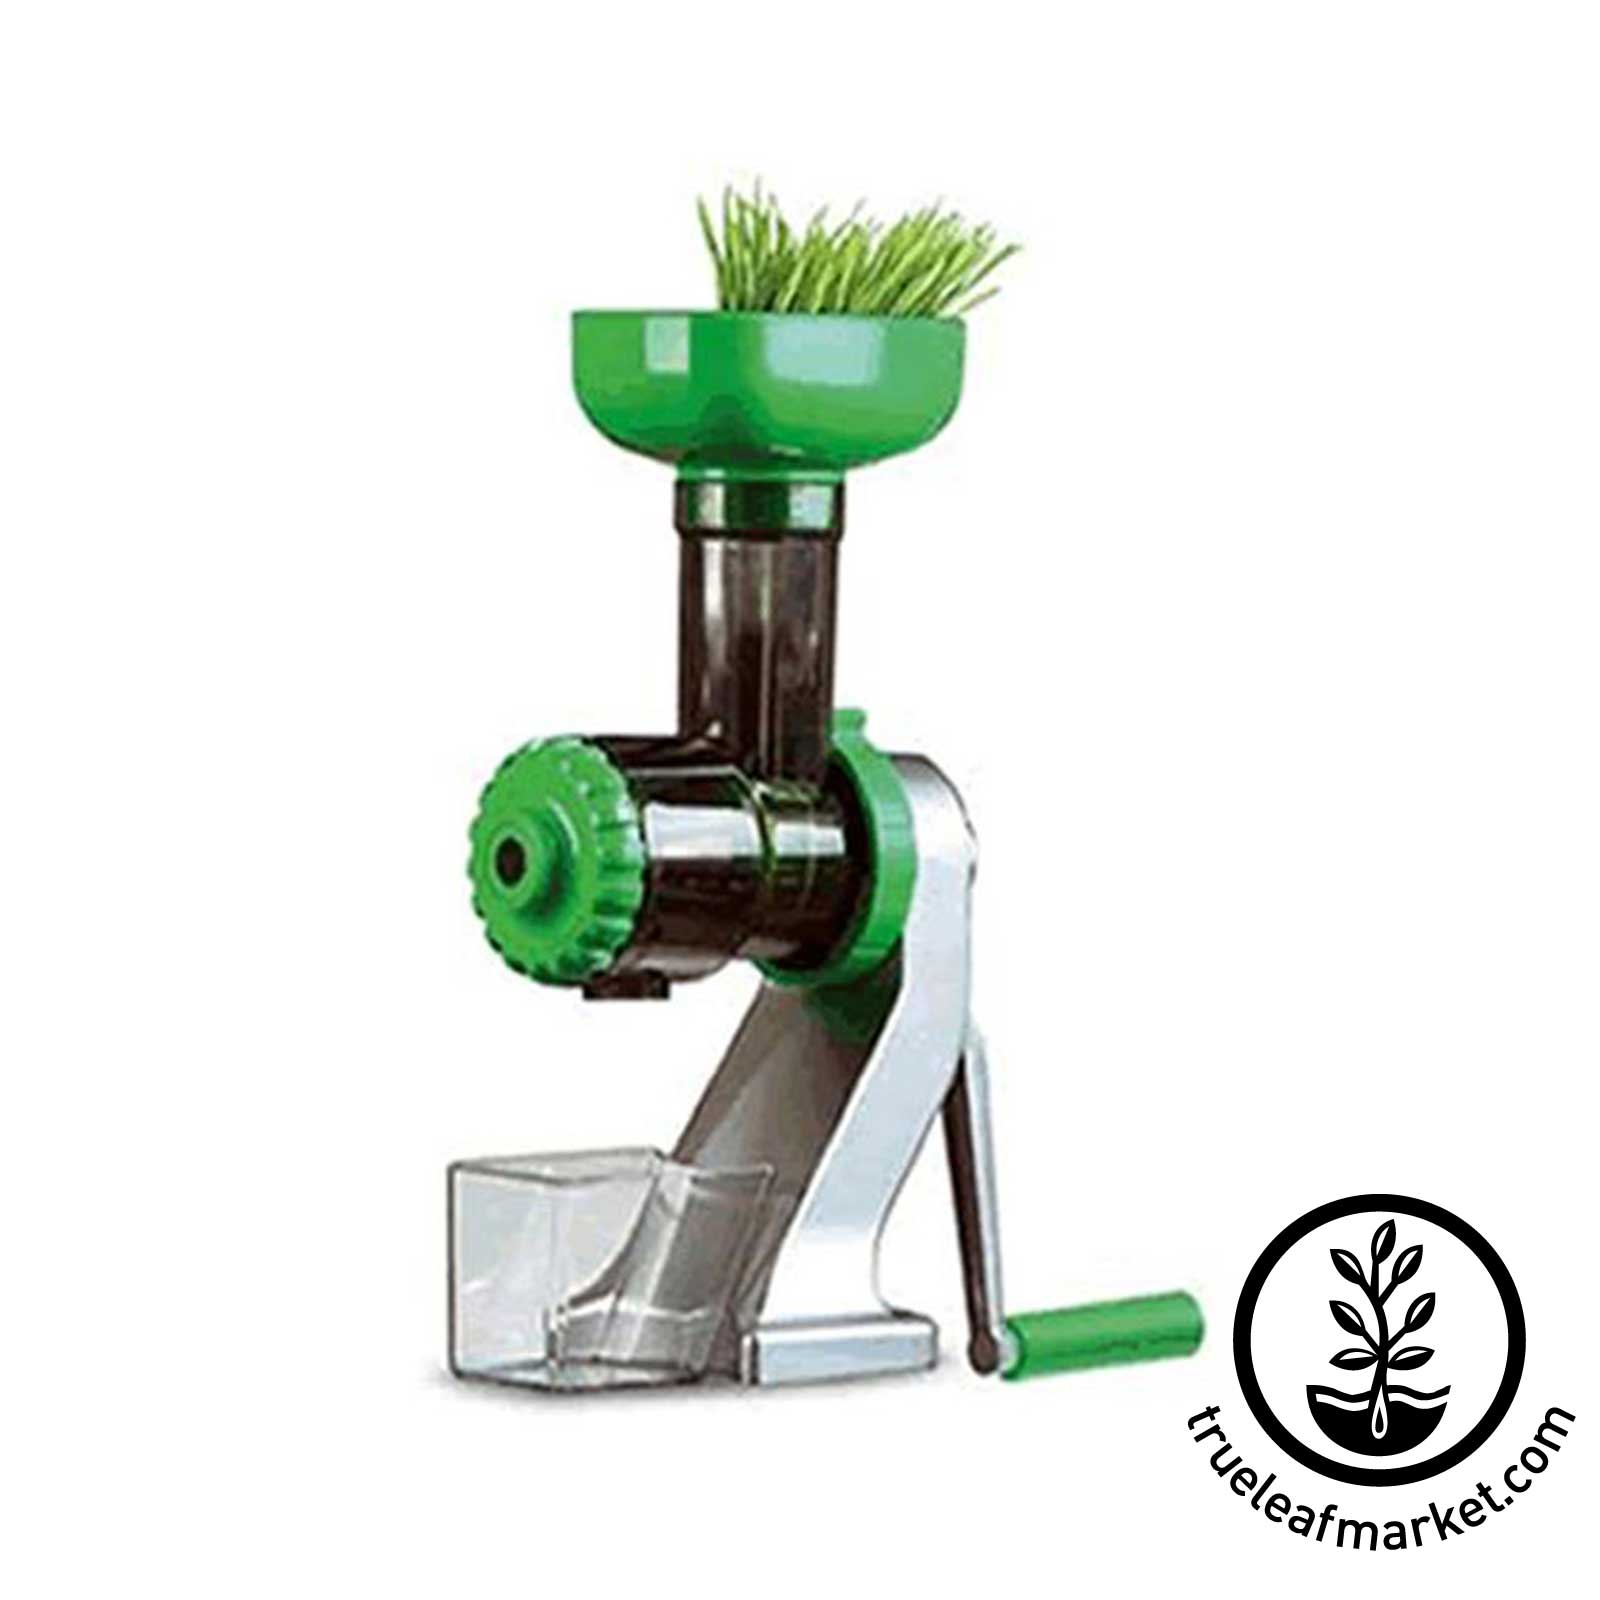 Z-Star Wheatgrass Manual Juicer by Tribest z star juicer, z star manual juicer, zstar juicer, zstar wheatgrass juicer, z-star manual juicer